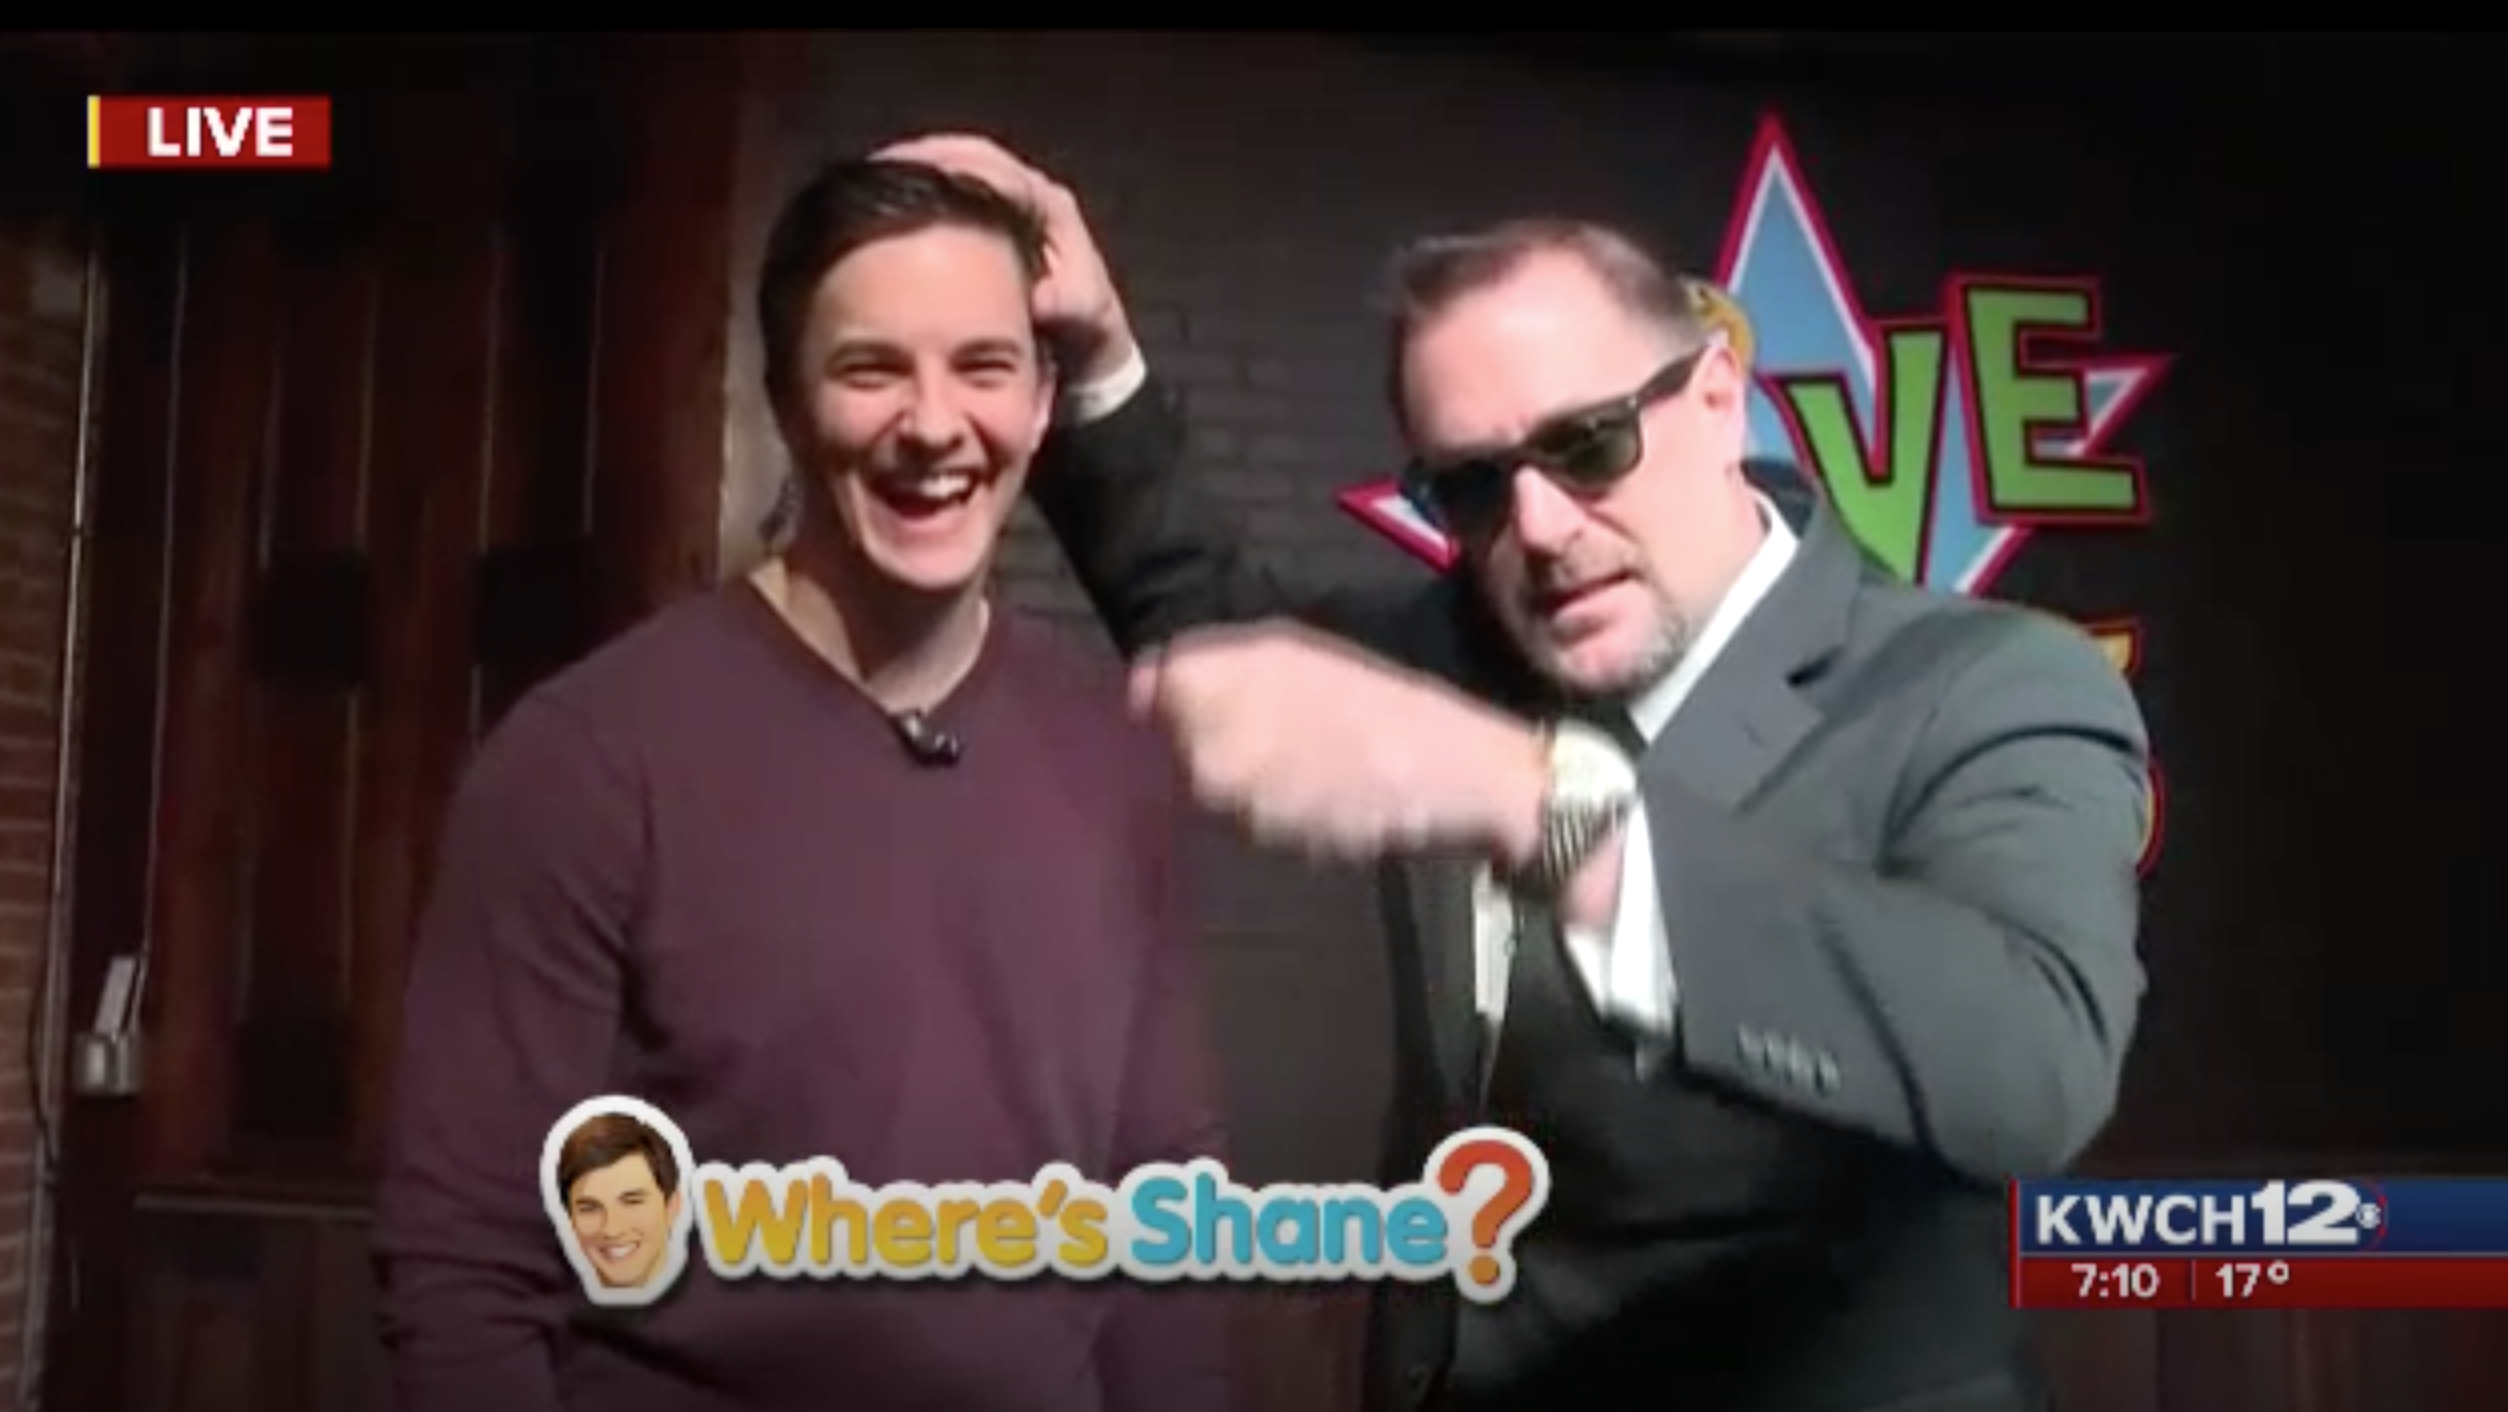 Curtis The Mentalist performs on TV channel KWCH 12 for Shane Konicky